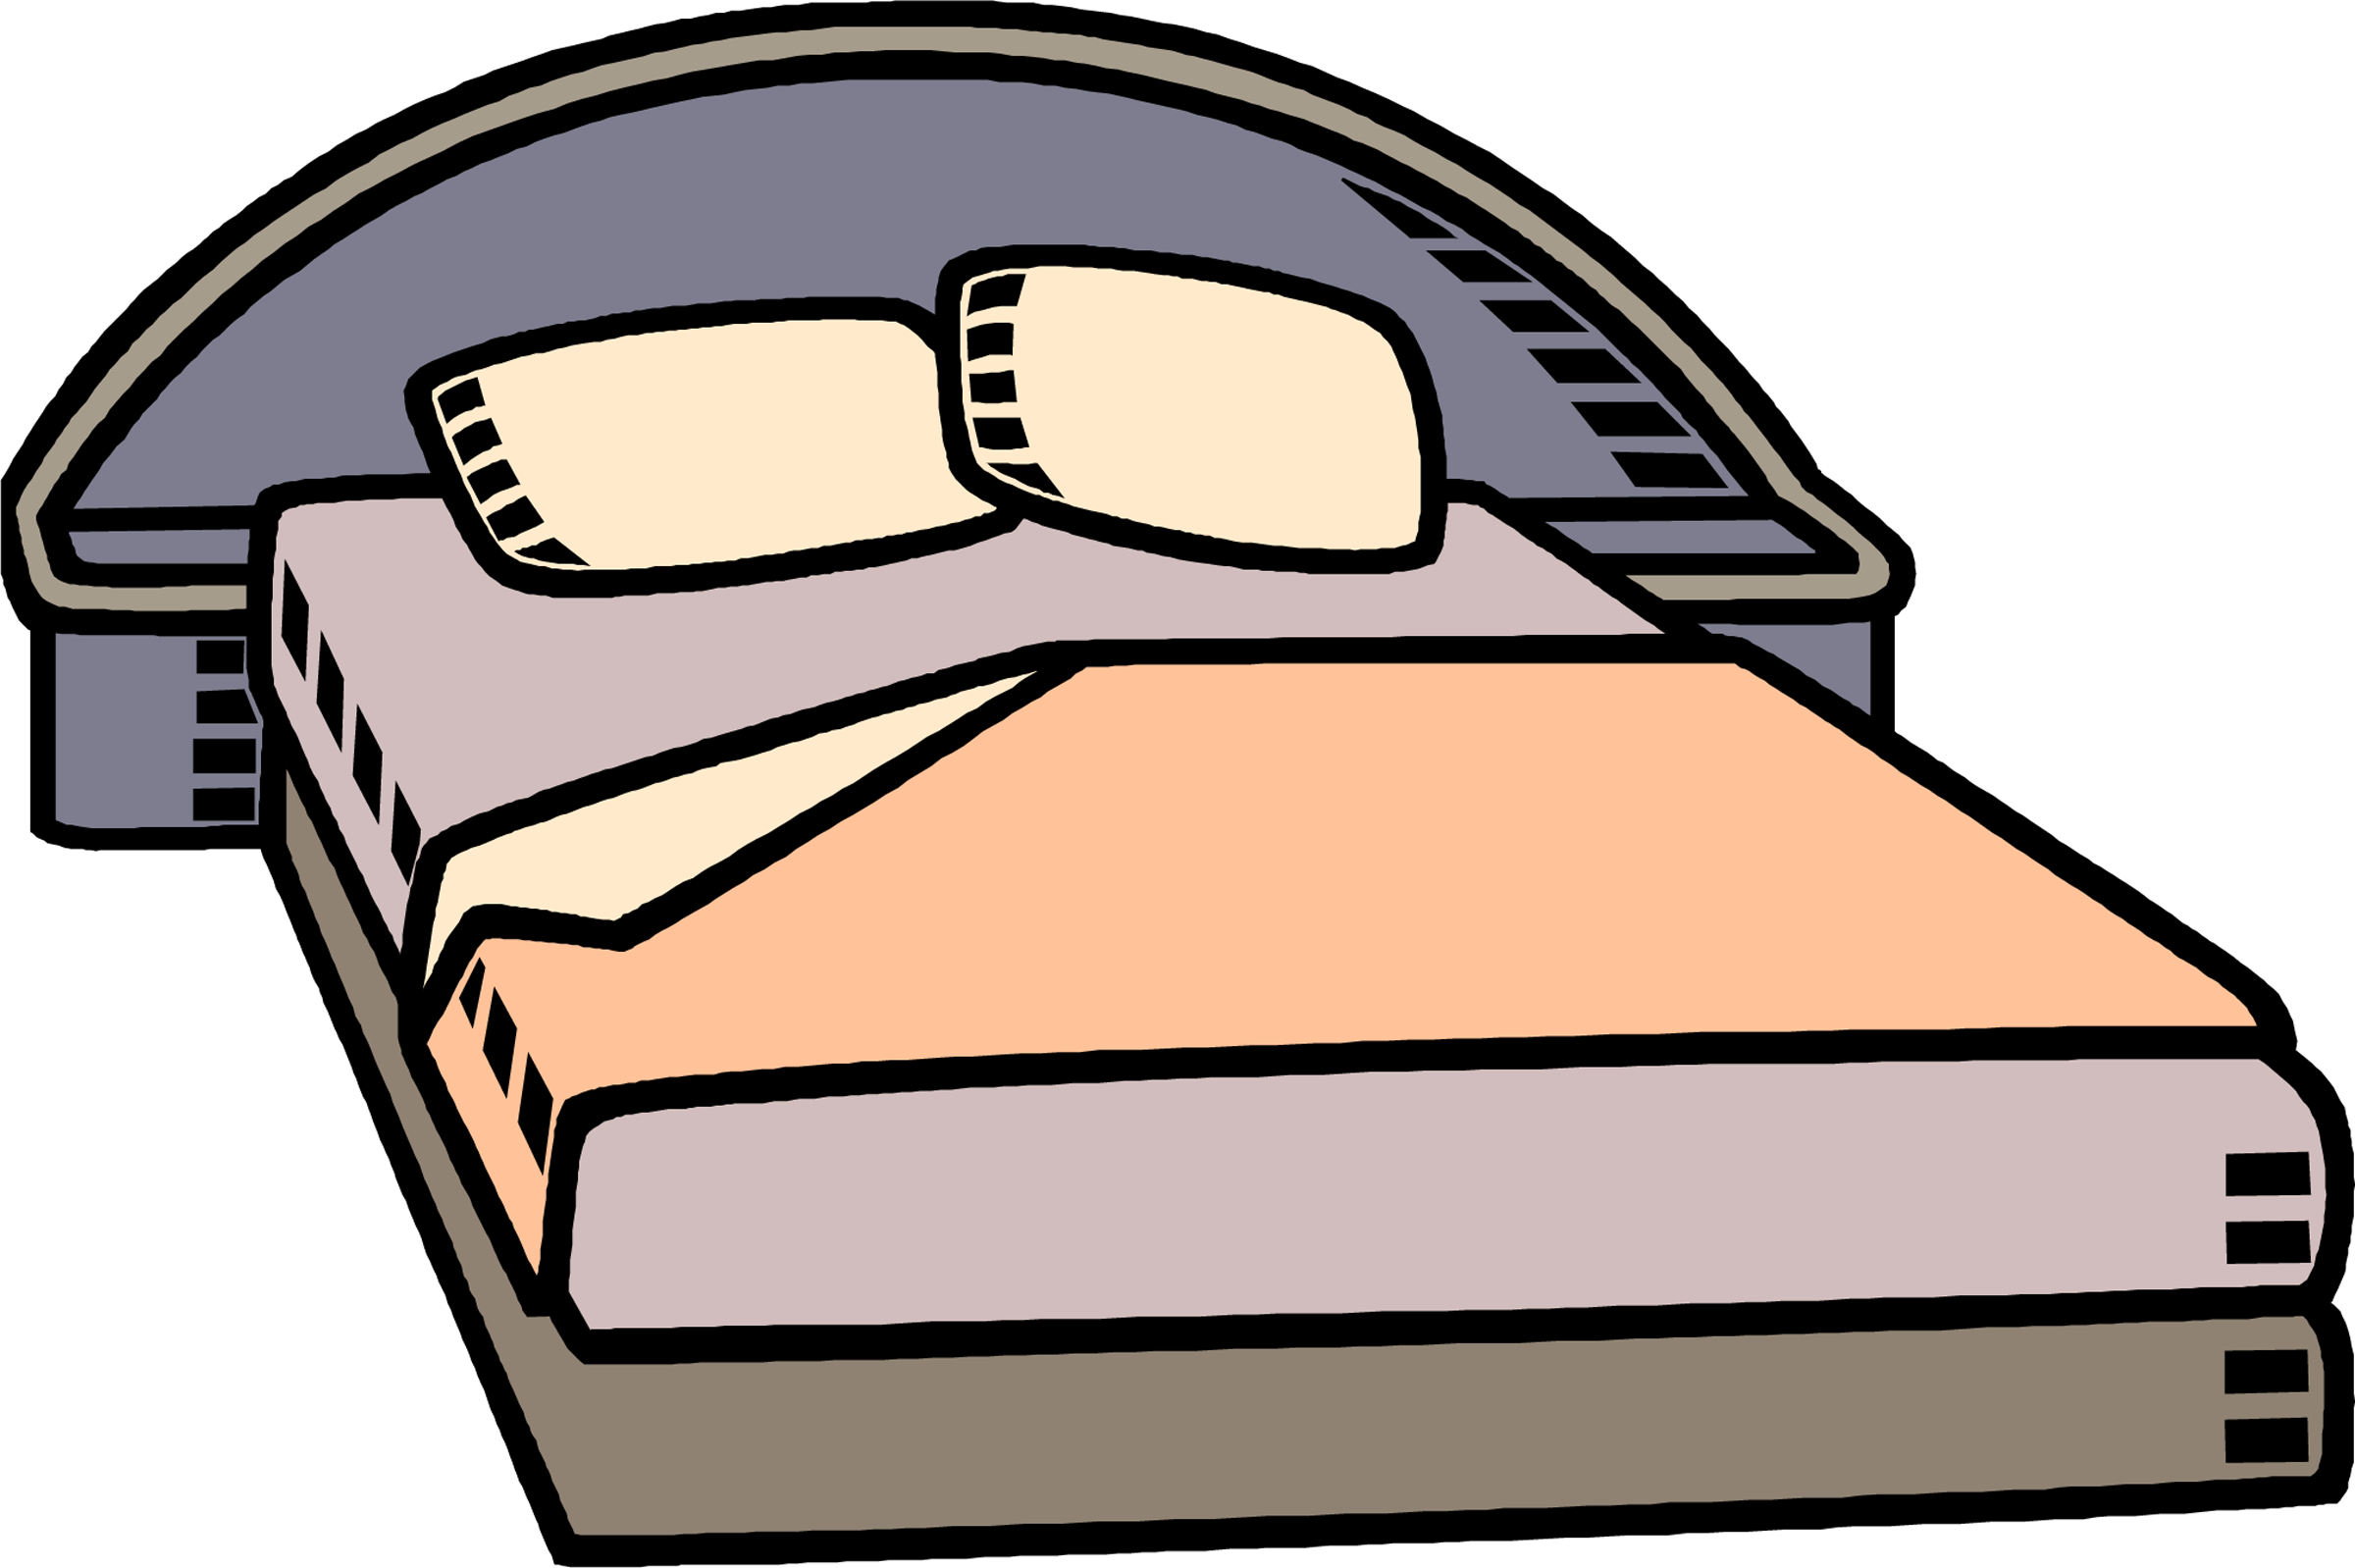 Make Your Own Bed Clipart. Make Your Bed Clipart   Clipart Kid